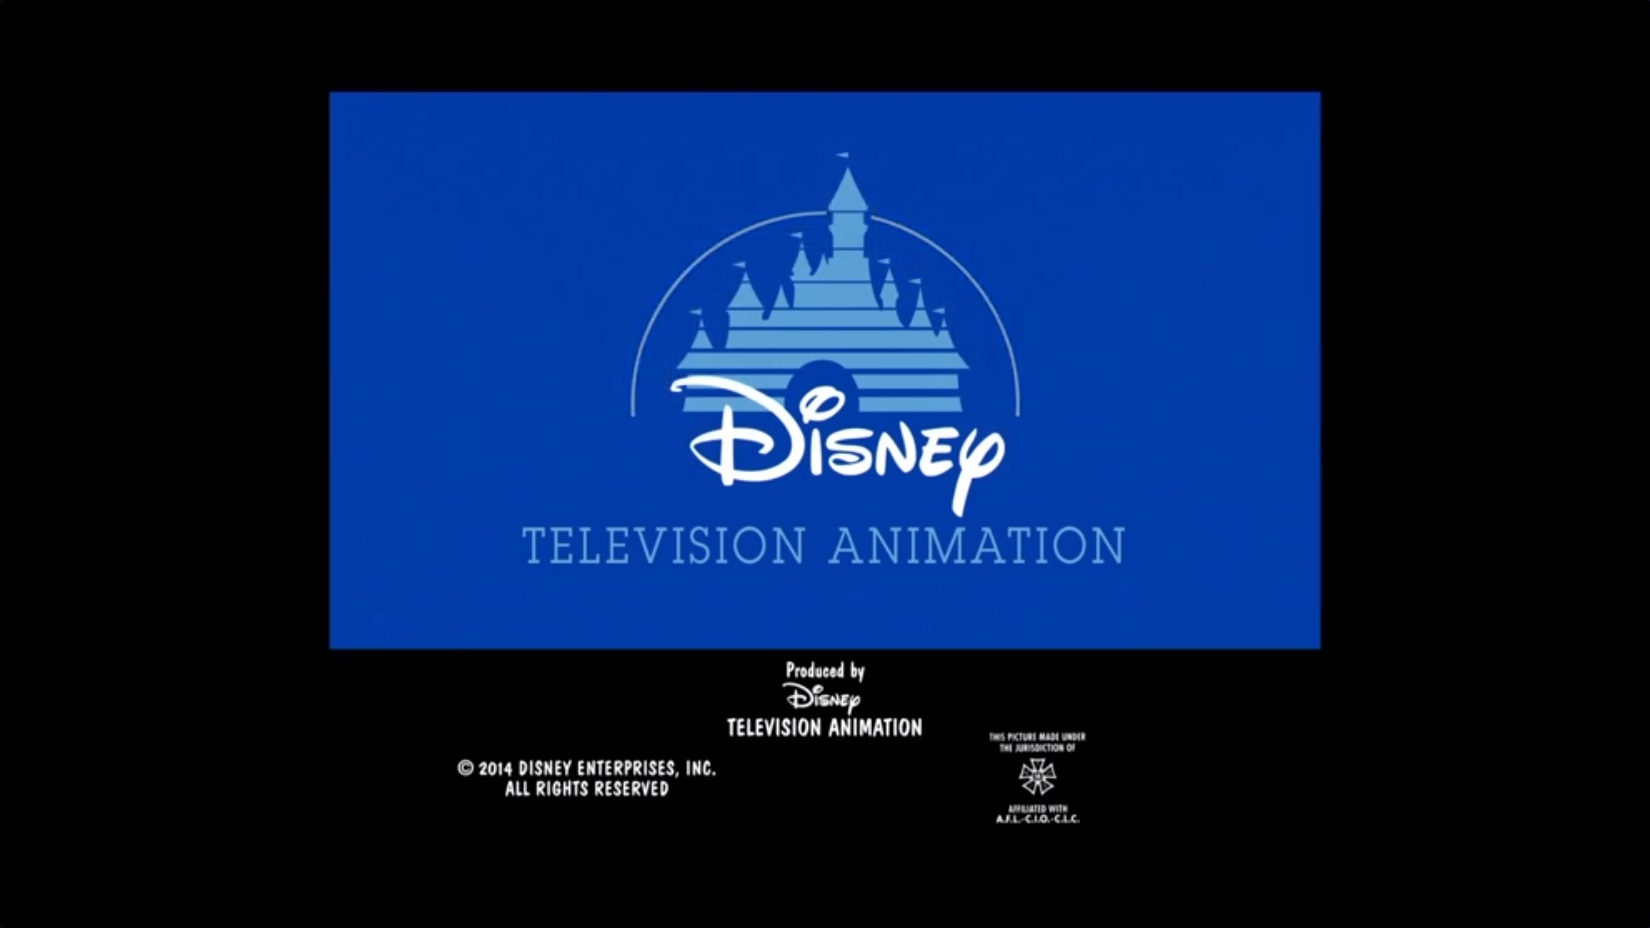 disney television animationother closing logo group